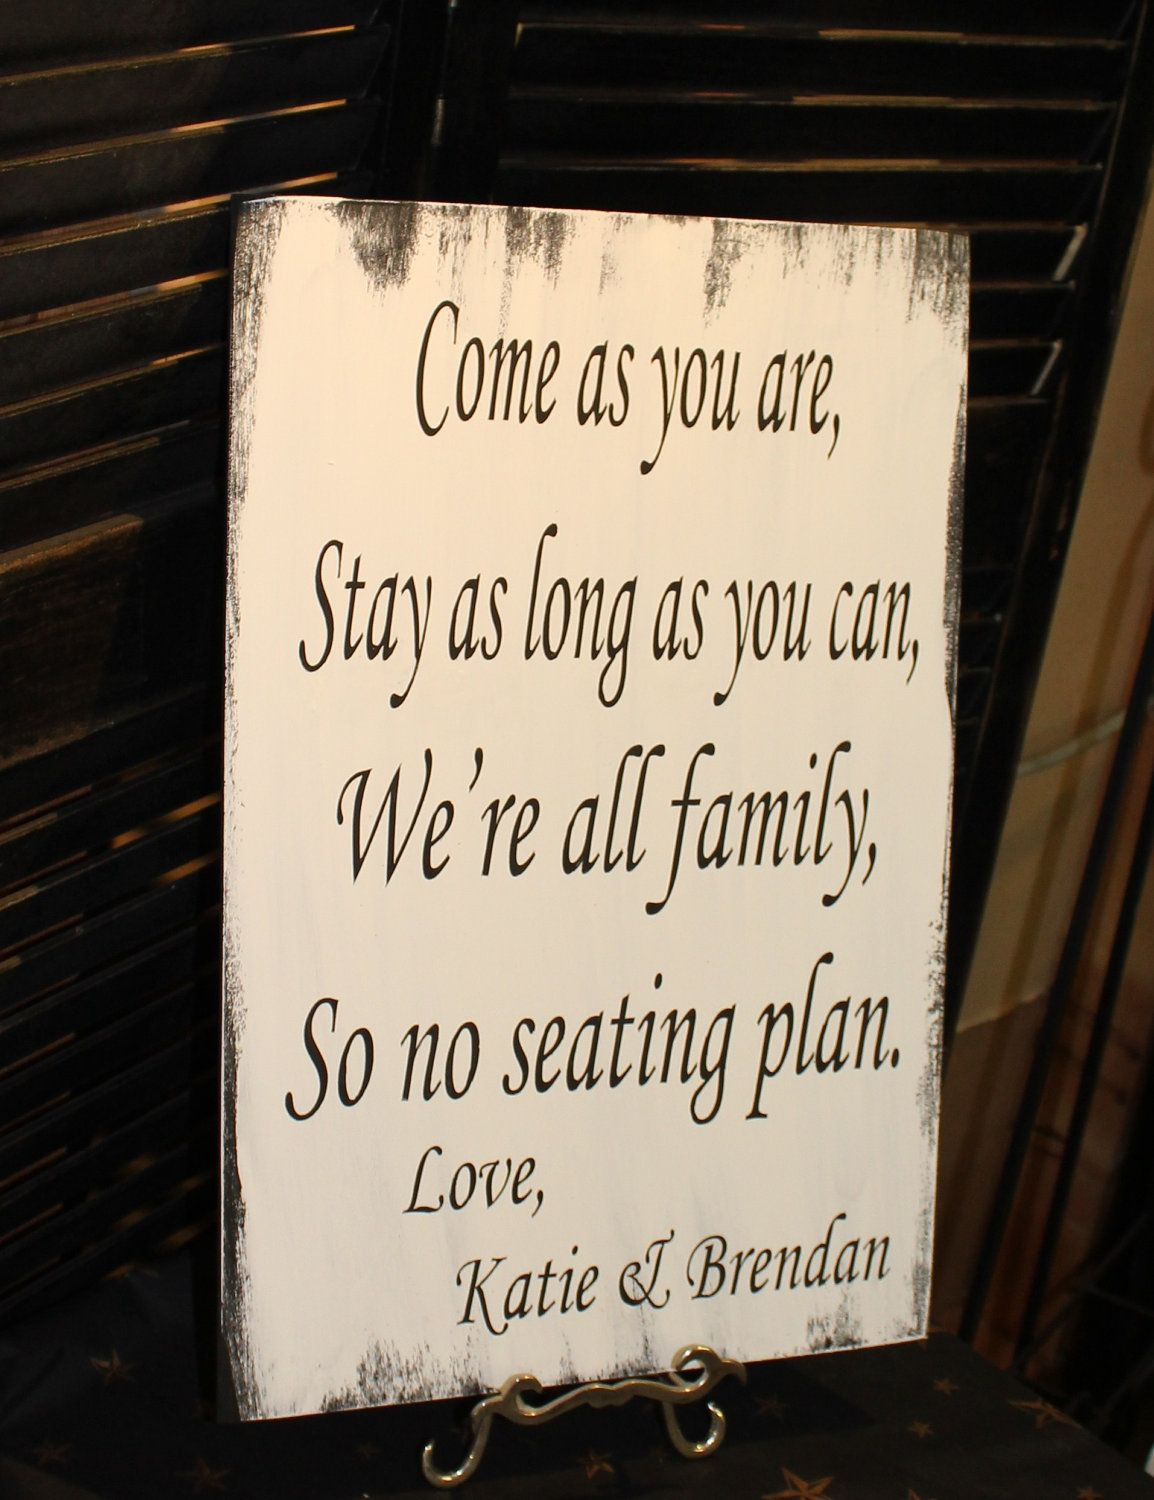 wedding signs reception tablesseating plan come as you are stay as long as you can were all family so no seating planblackwhite